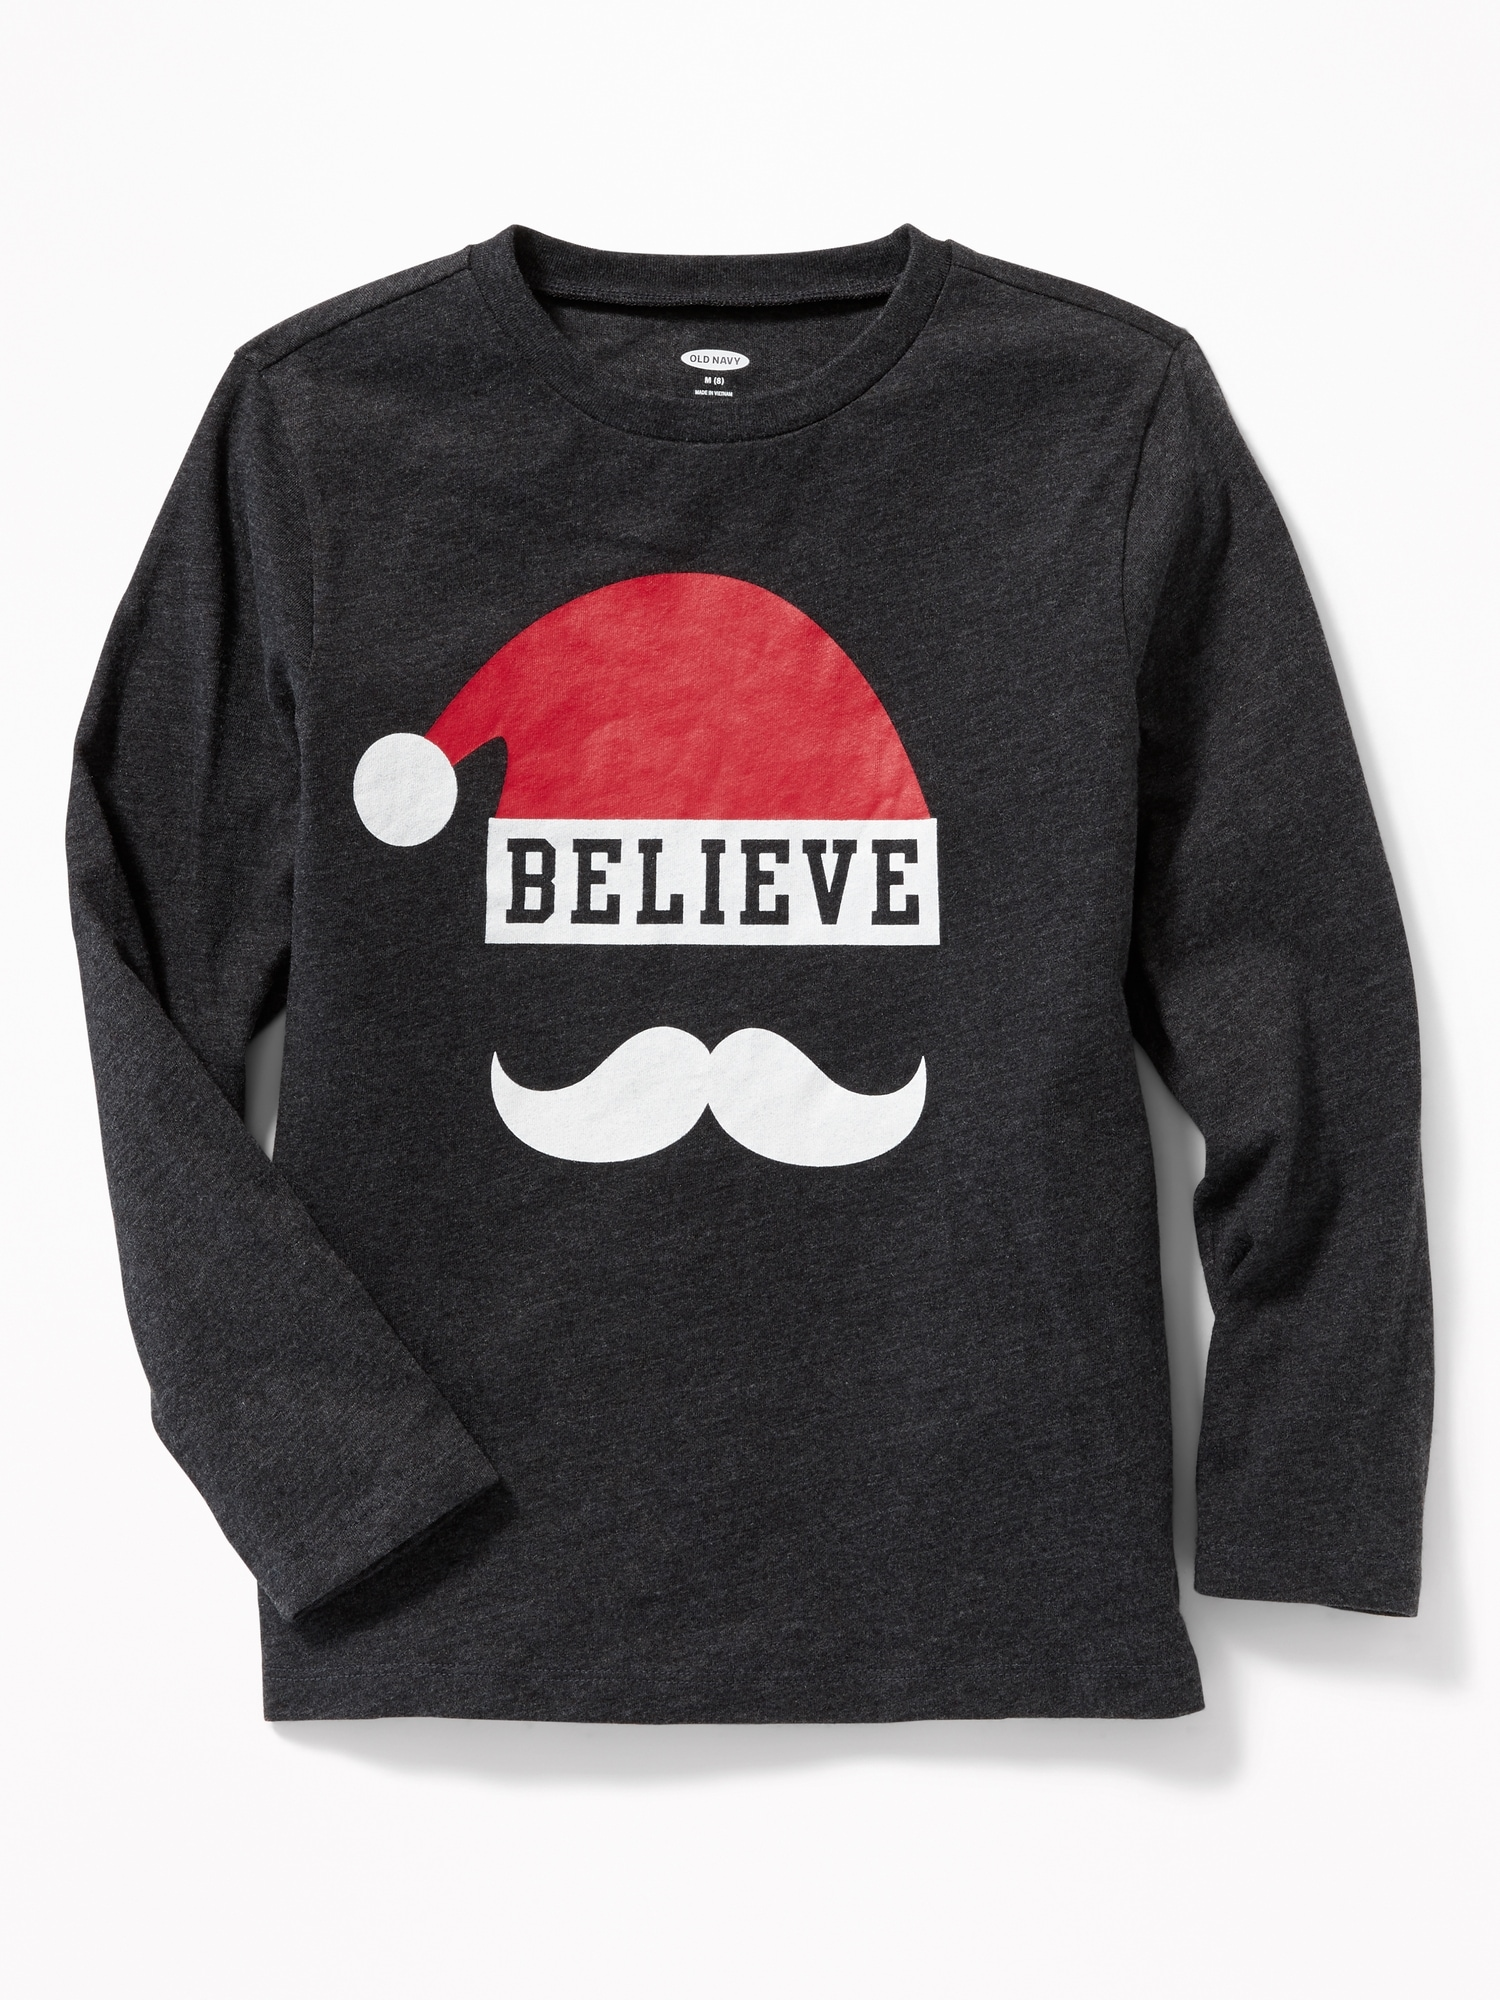 Christmas Graphic Crew-Neck Tee for Boys   Old Navy